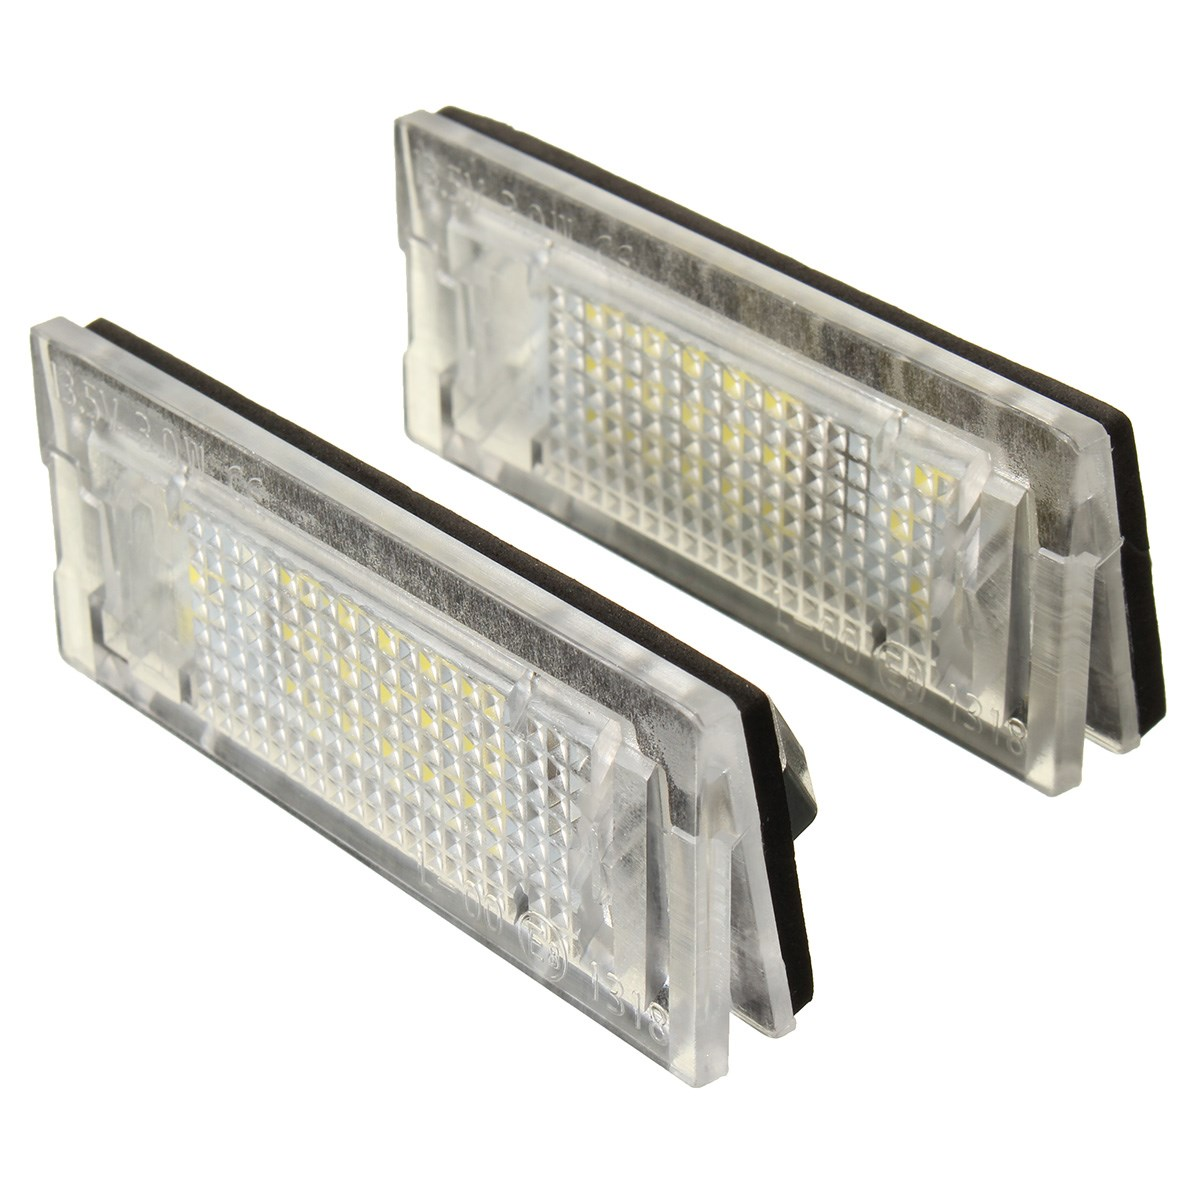 2x White LED Number License Plate Lights Lamp Fit For BMW E39 TOURING 5Door 2x e marked obc error free 24 led white license number plate light lamp for bmw e81 e82 e90 e91 e92 e93 e60 e61 e39 x1 e84